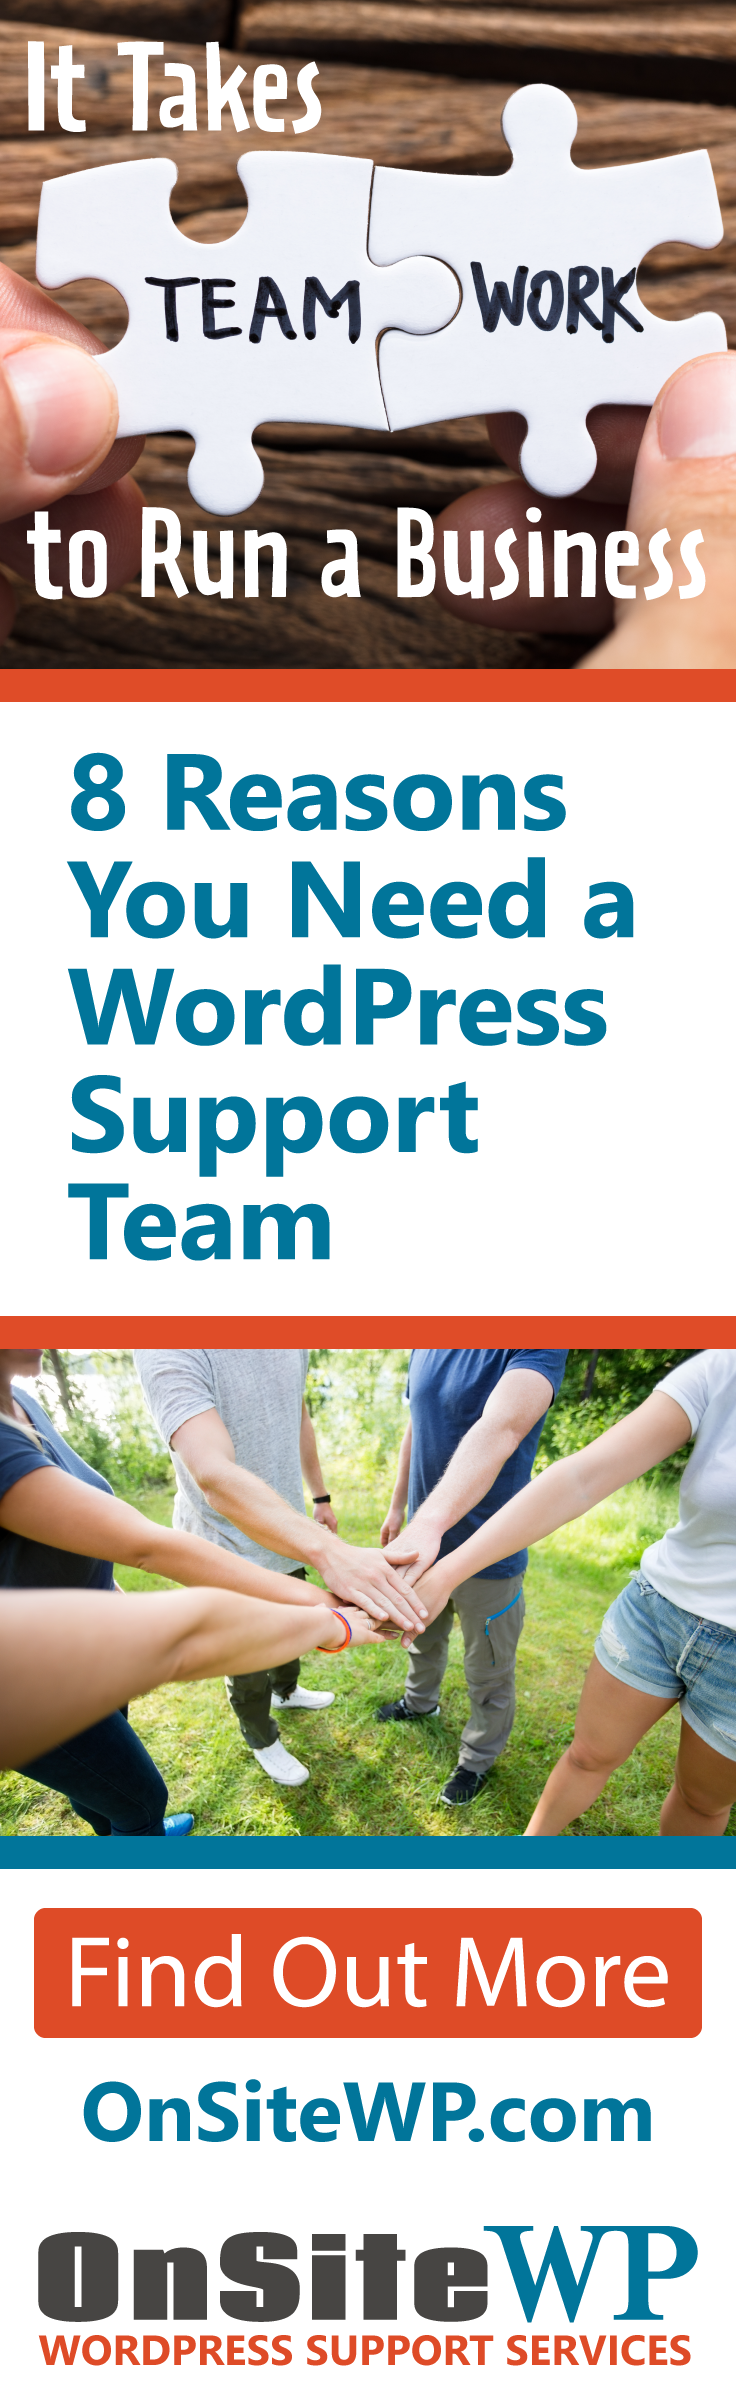 8 Reasons you Need a WordPress Support Team